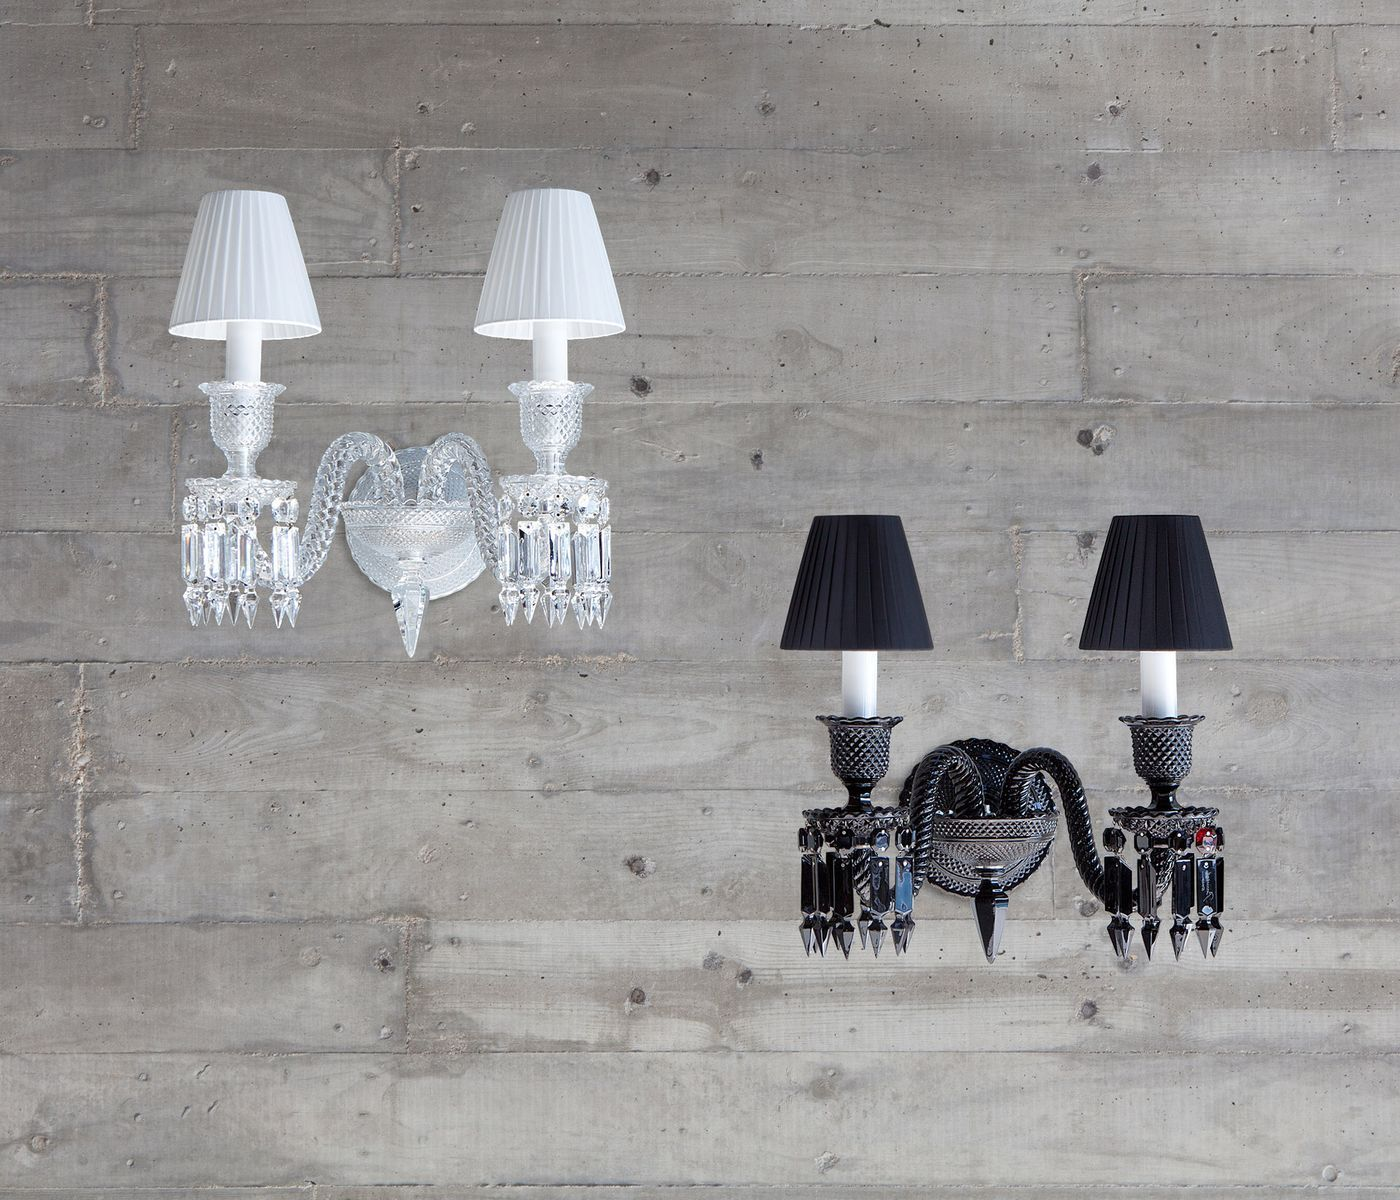 Baccarat Zenith Wand Lamp Wall Sconce White Black Noir Blanc Wall Lamps Bedroom Wall Lamp Design Crystal Wall Sconces